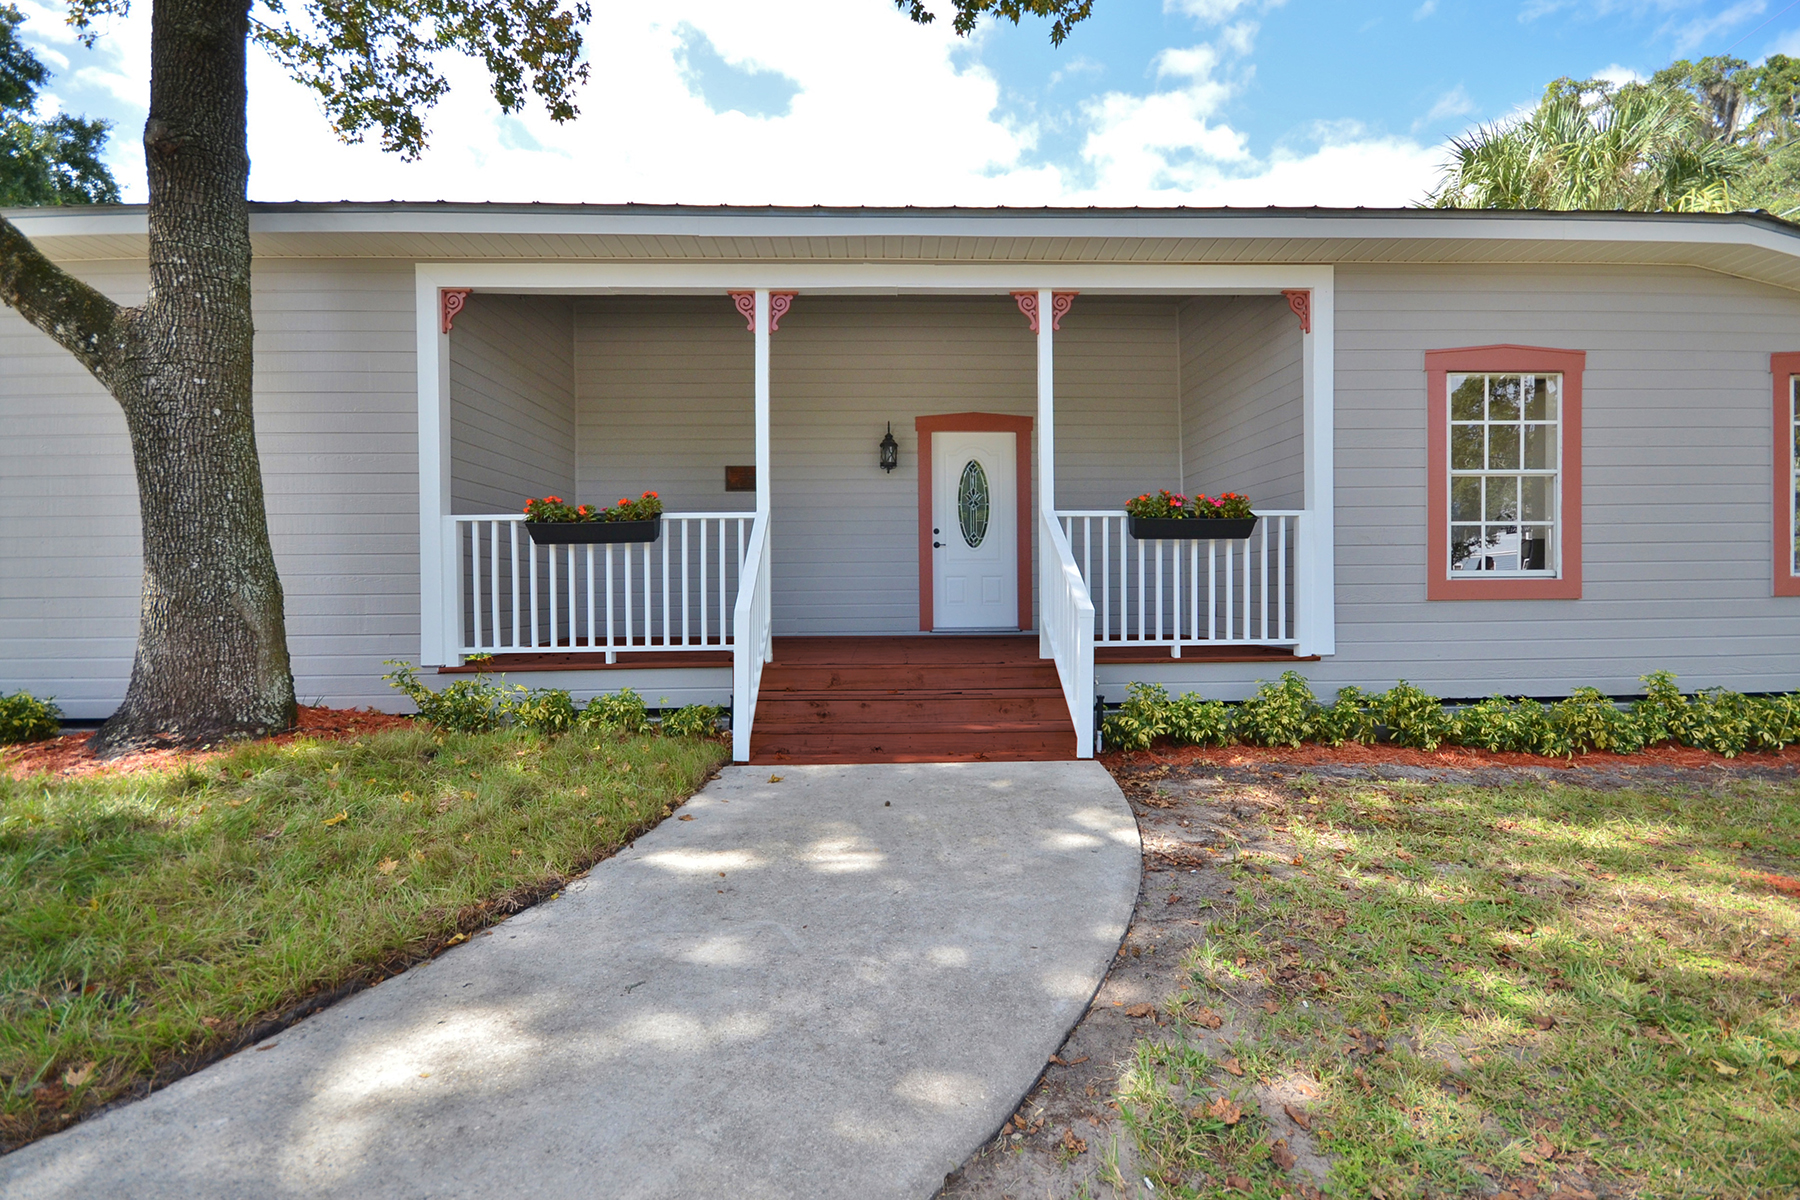 Single Family Home for Sale at ORLANDO - HISTORIC LONGWOOD 402 Wilma St Longwood, Florida 32750 United States